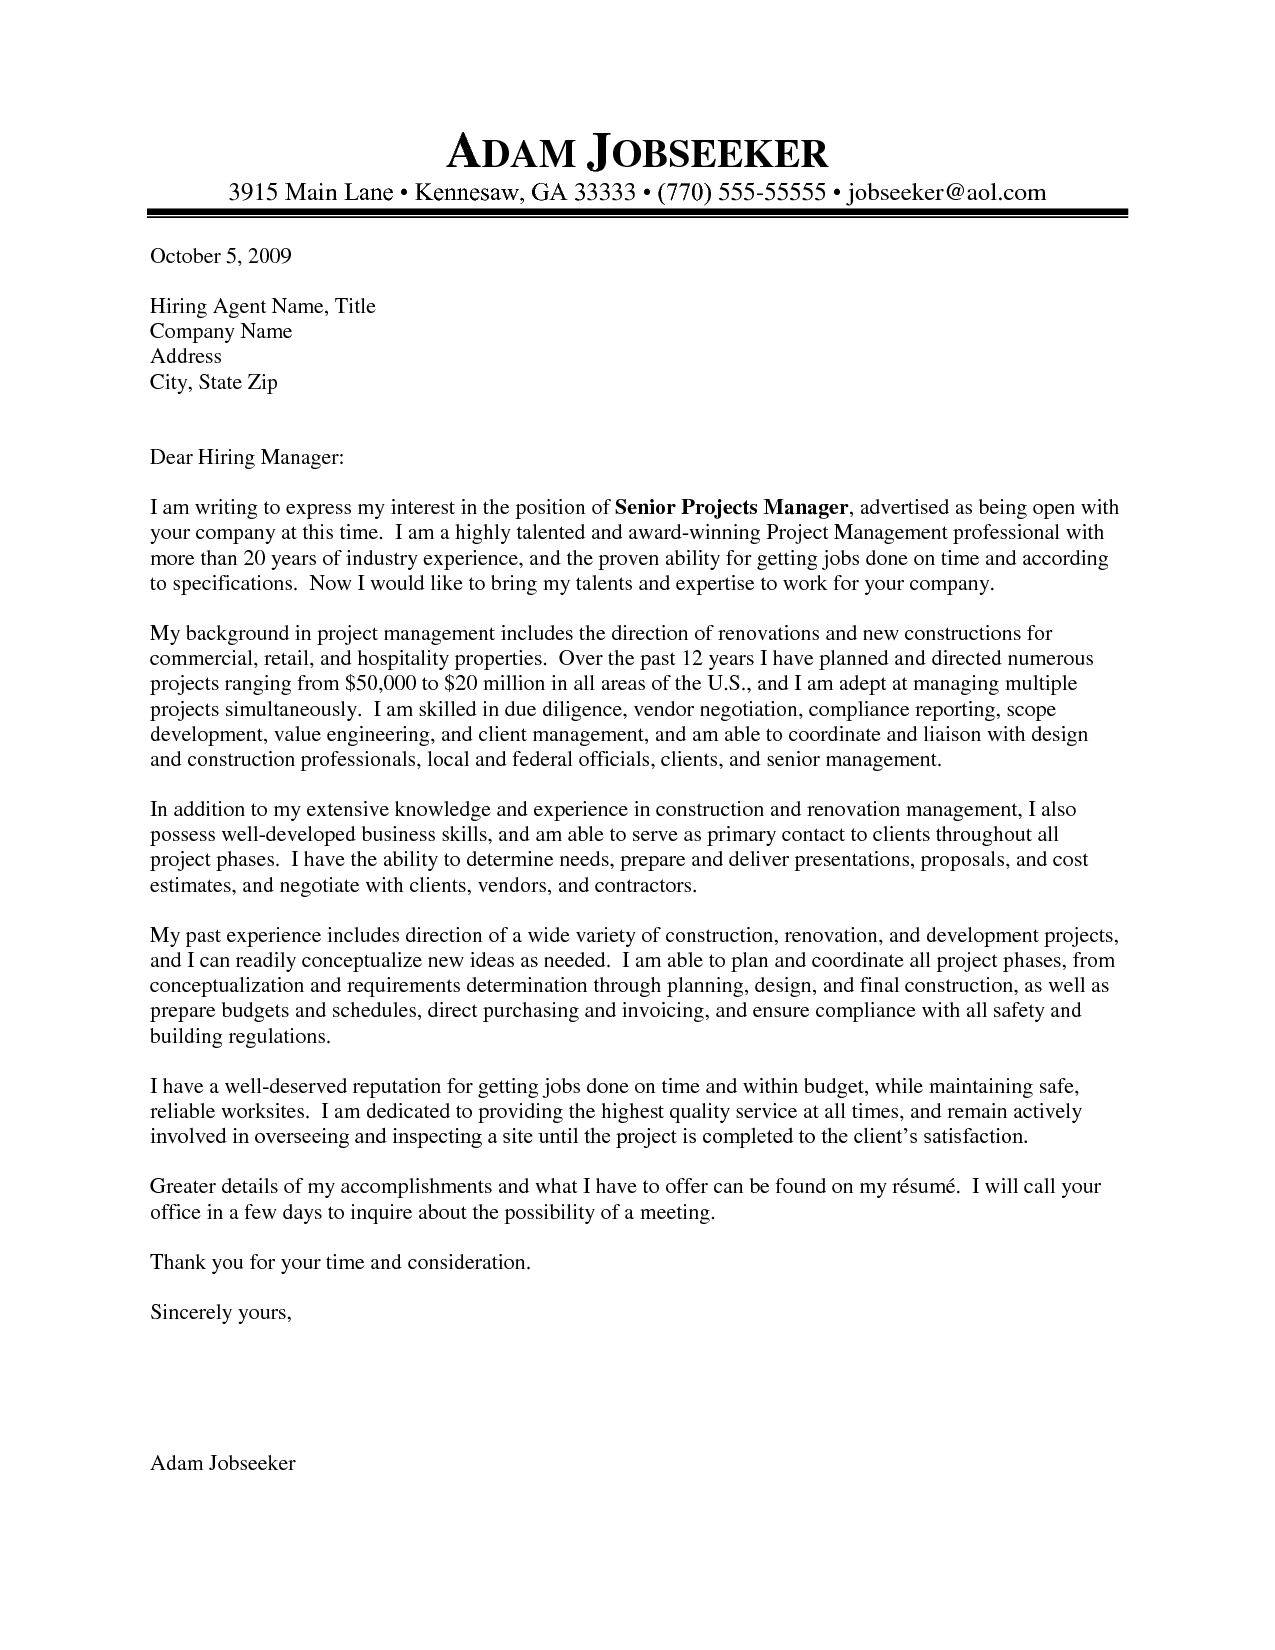 25 Project Manager Cover Letter Cover Letter For Resume Project Manager Cover Letter Marketing Cover Letter